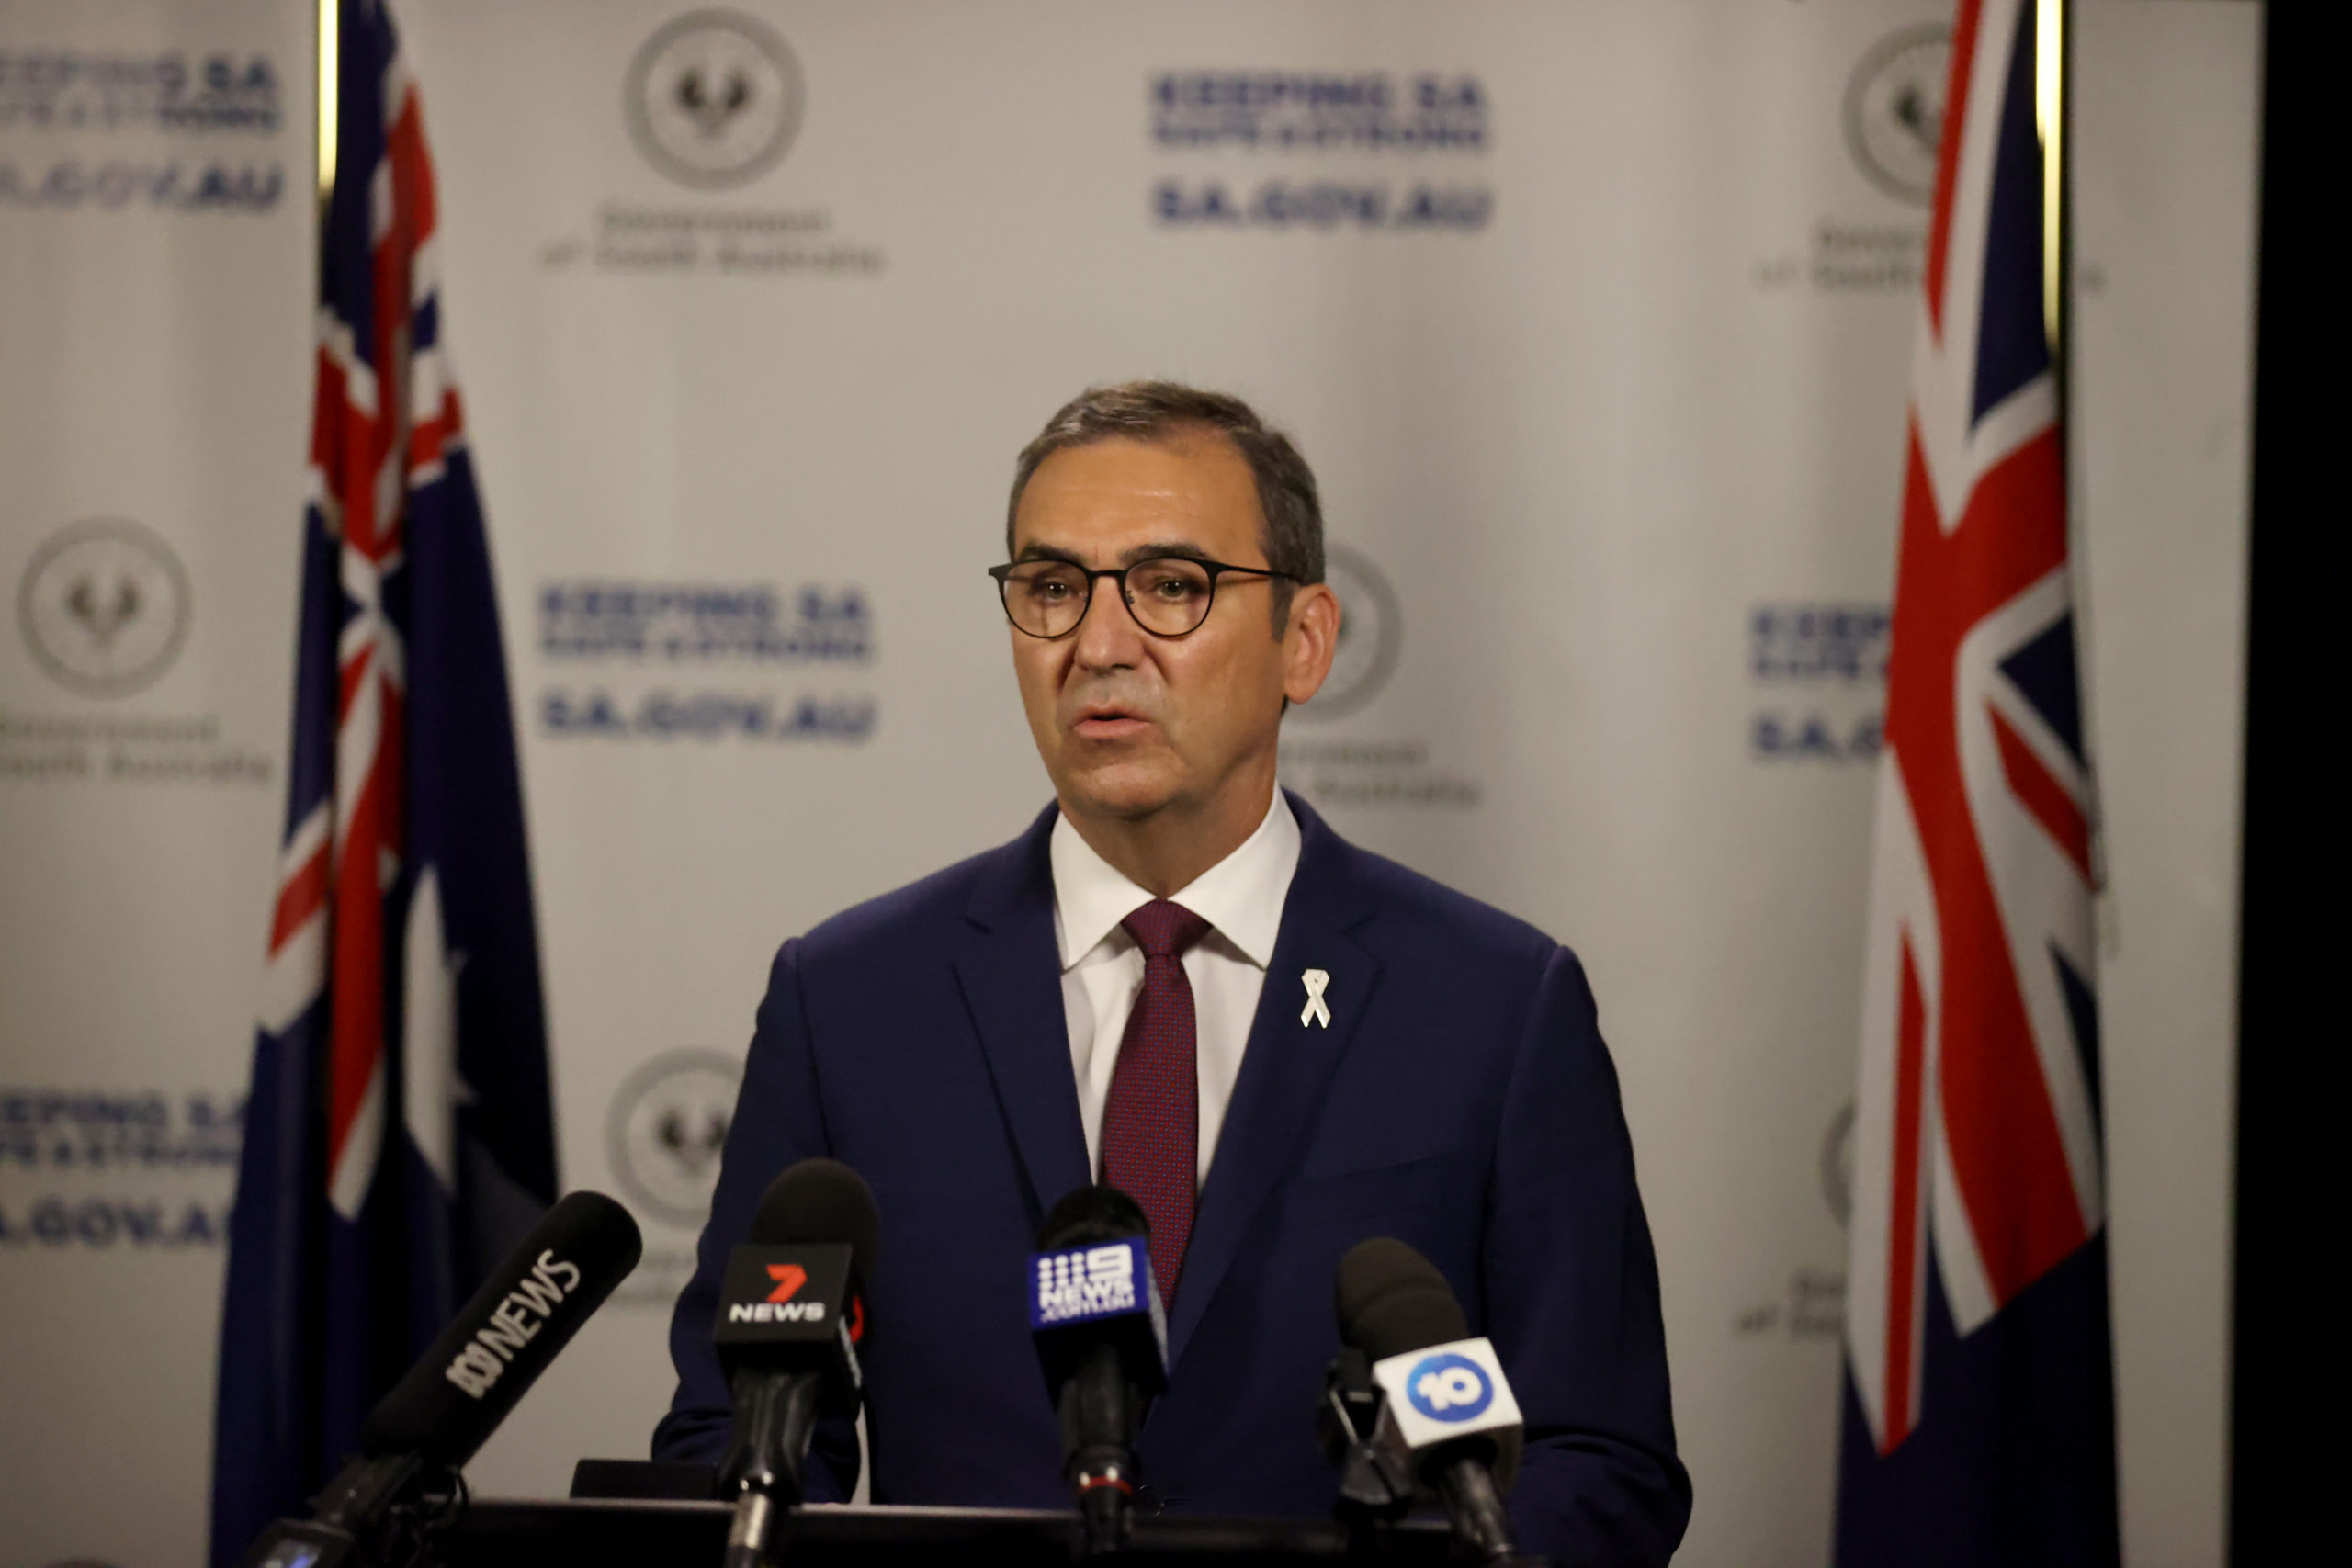 South Australian Premier Steven Marshall announces restrictions being eased in South Australia on Friday. (Kelly Barnes/Getty Images)